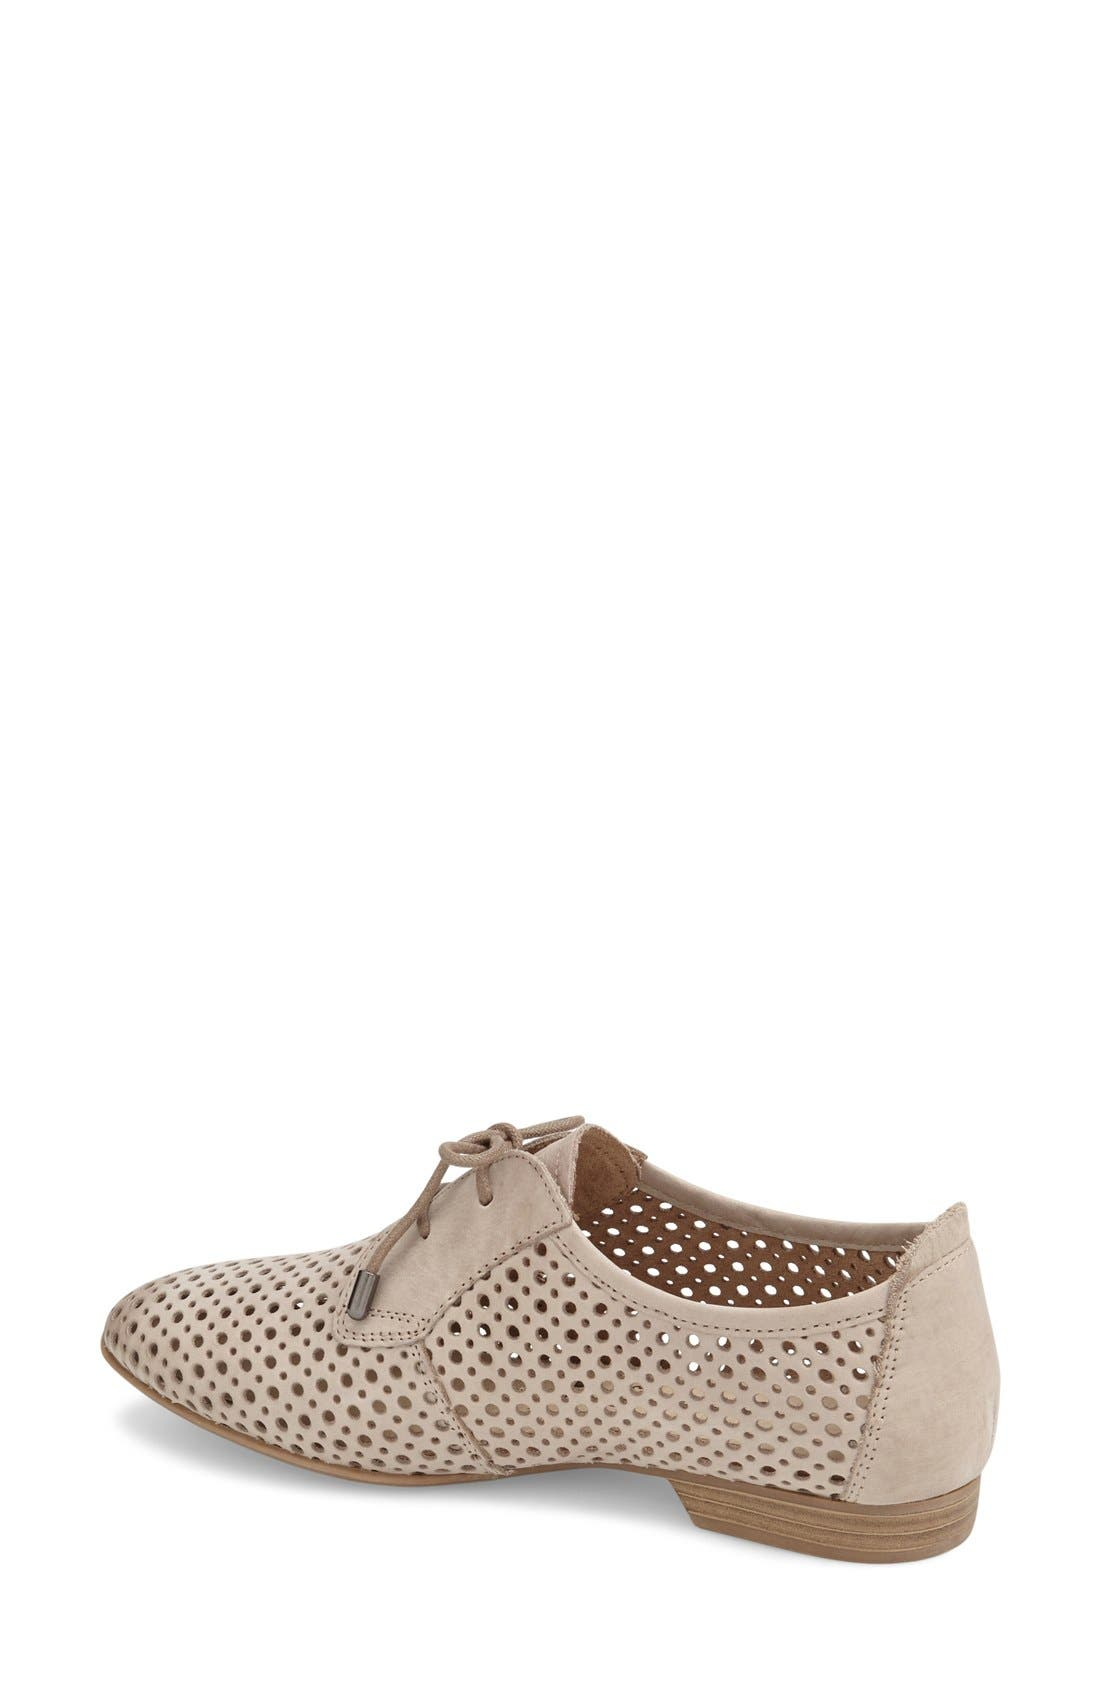 'Drene' Perforated Oxford,                             Alternate thumbnail 2, color,                             Pepper Suede